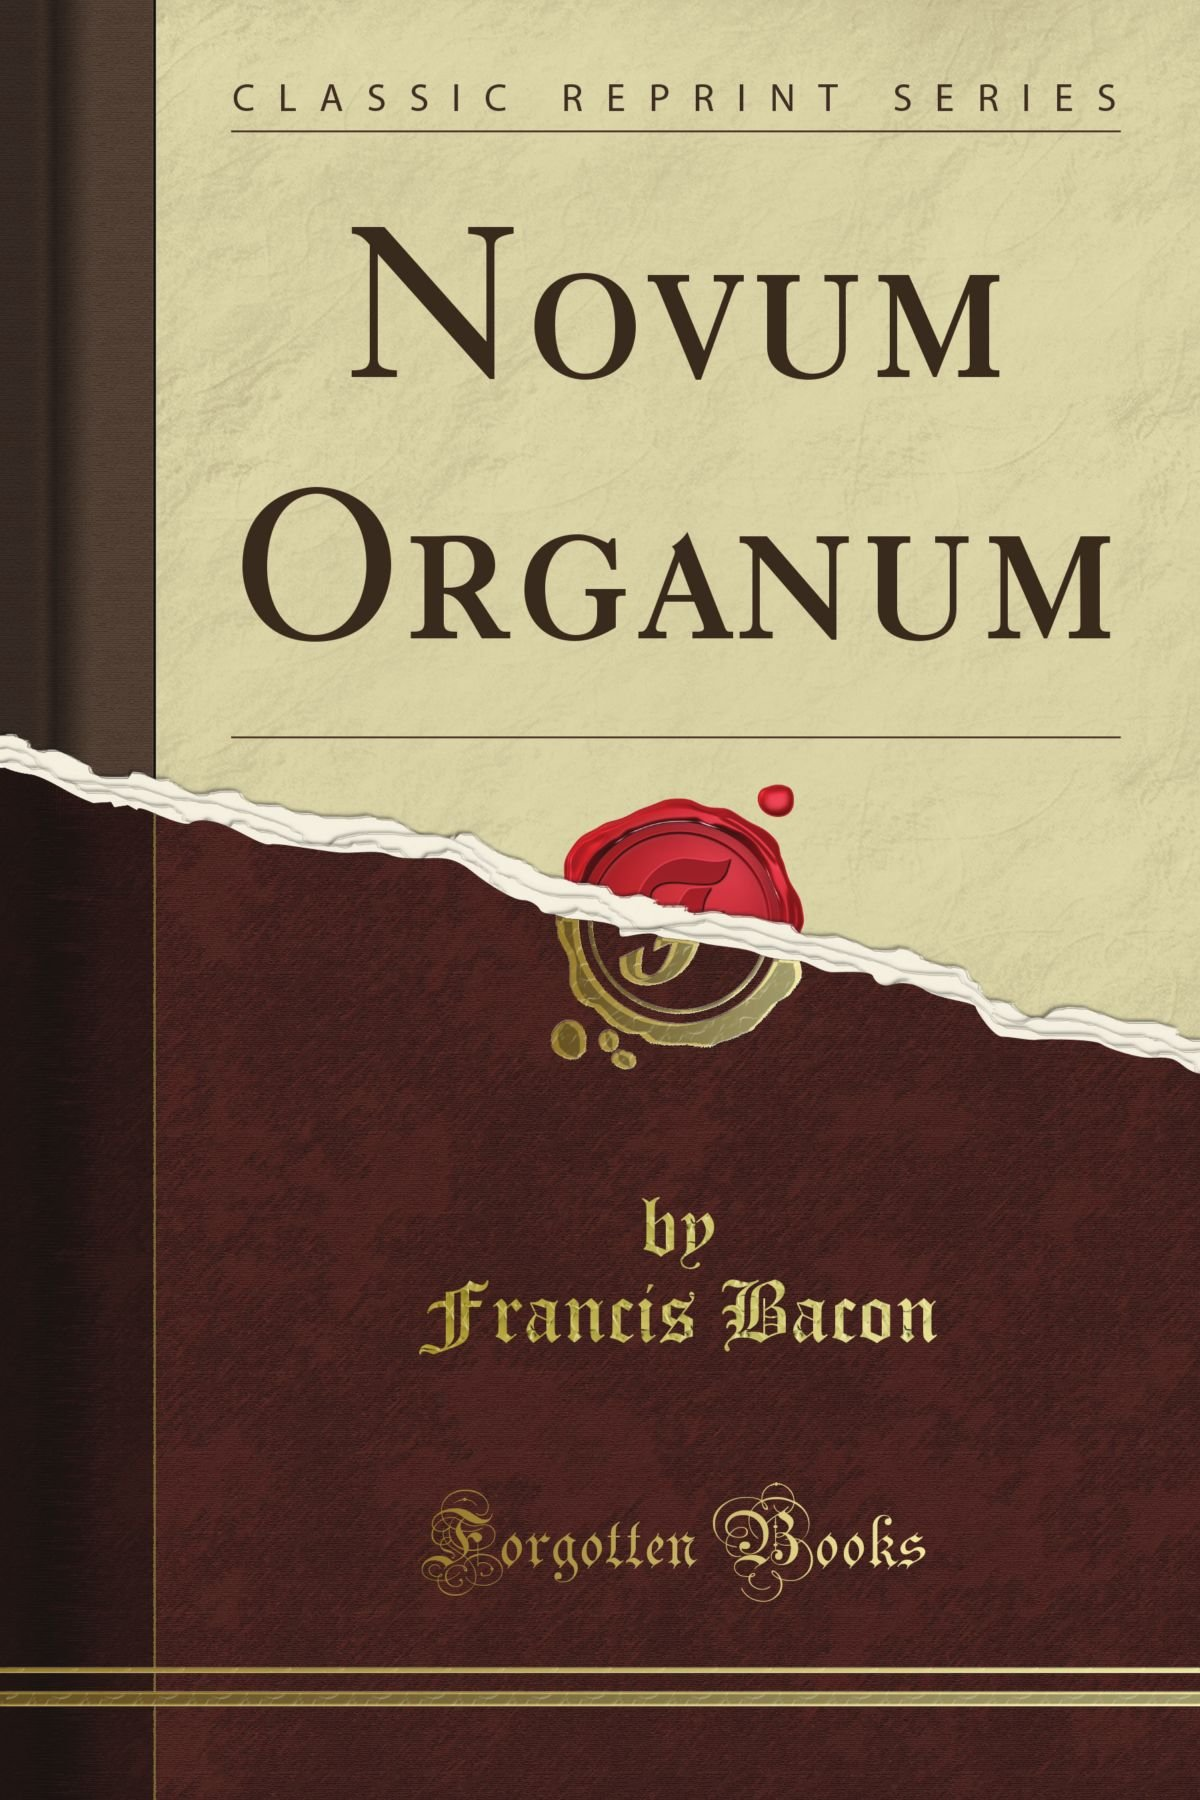 The original introduction to the novum organon how to buy steroid in canada